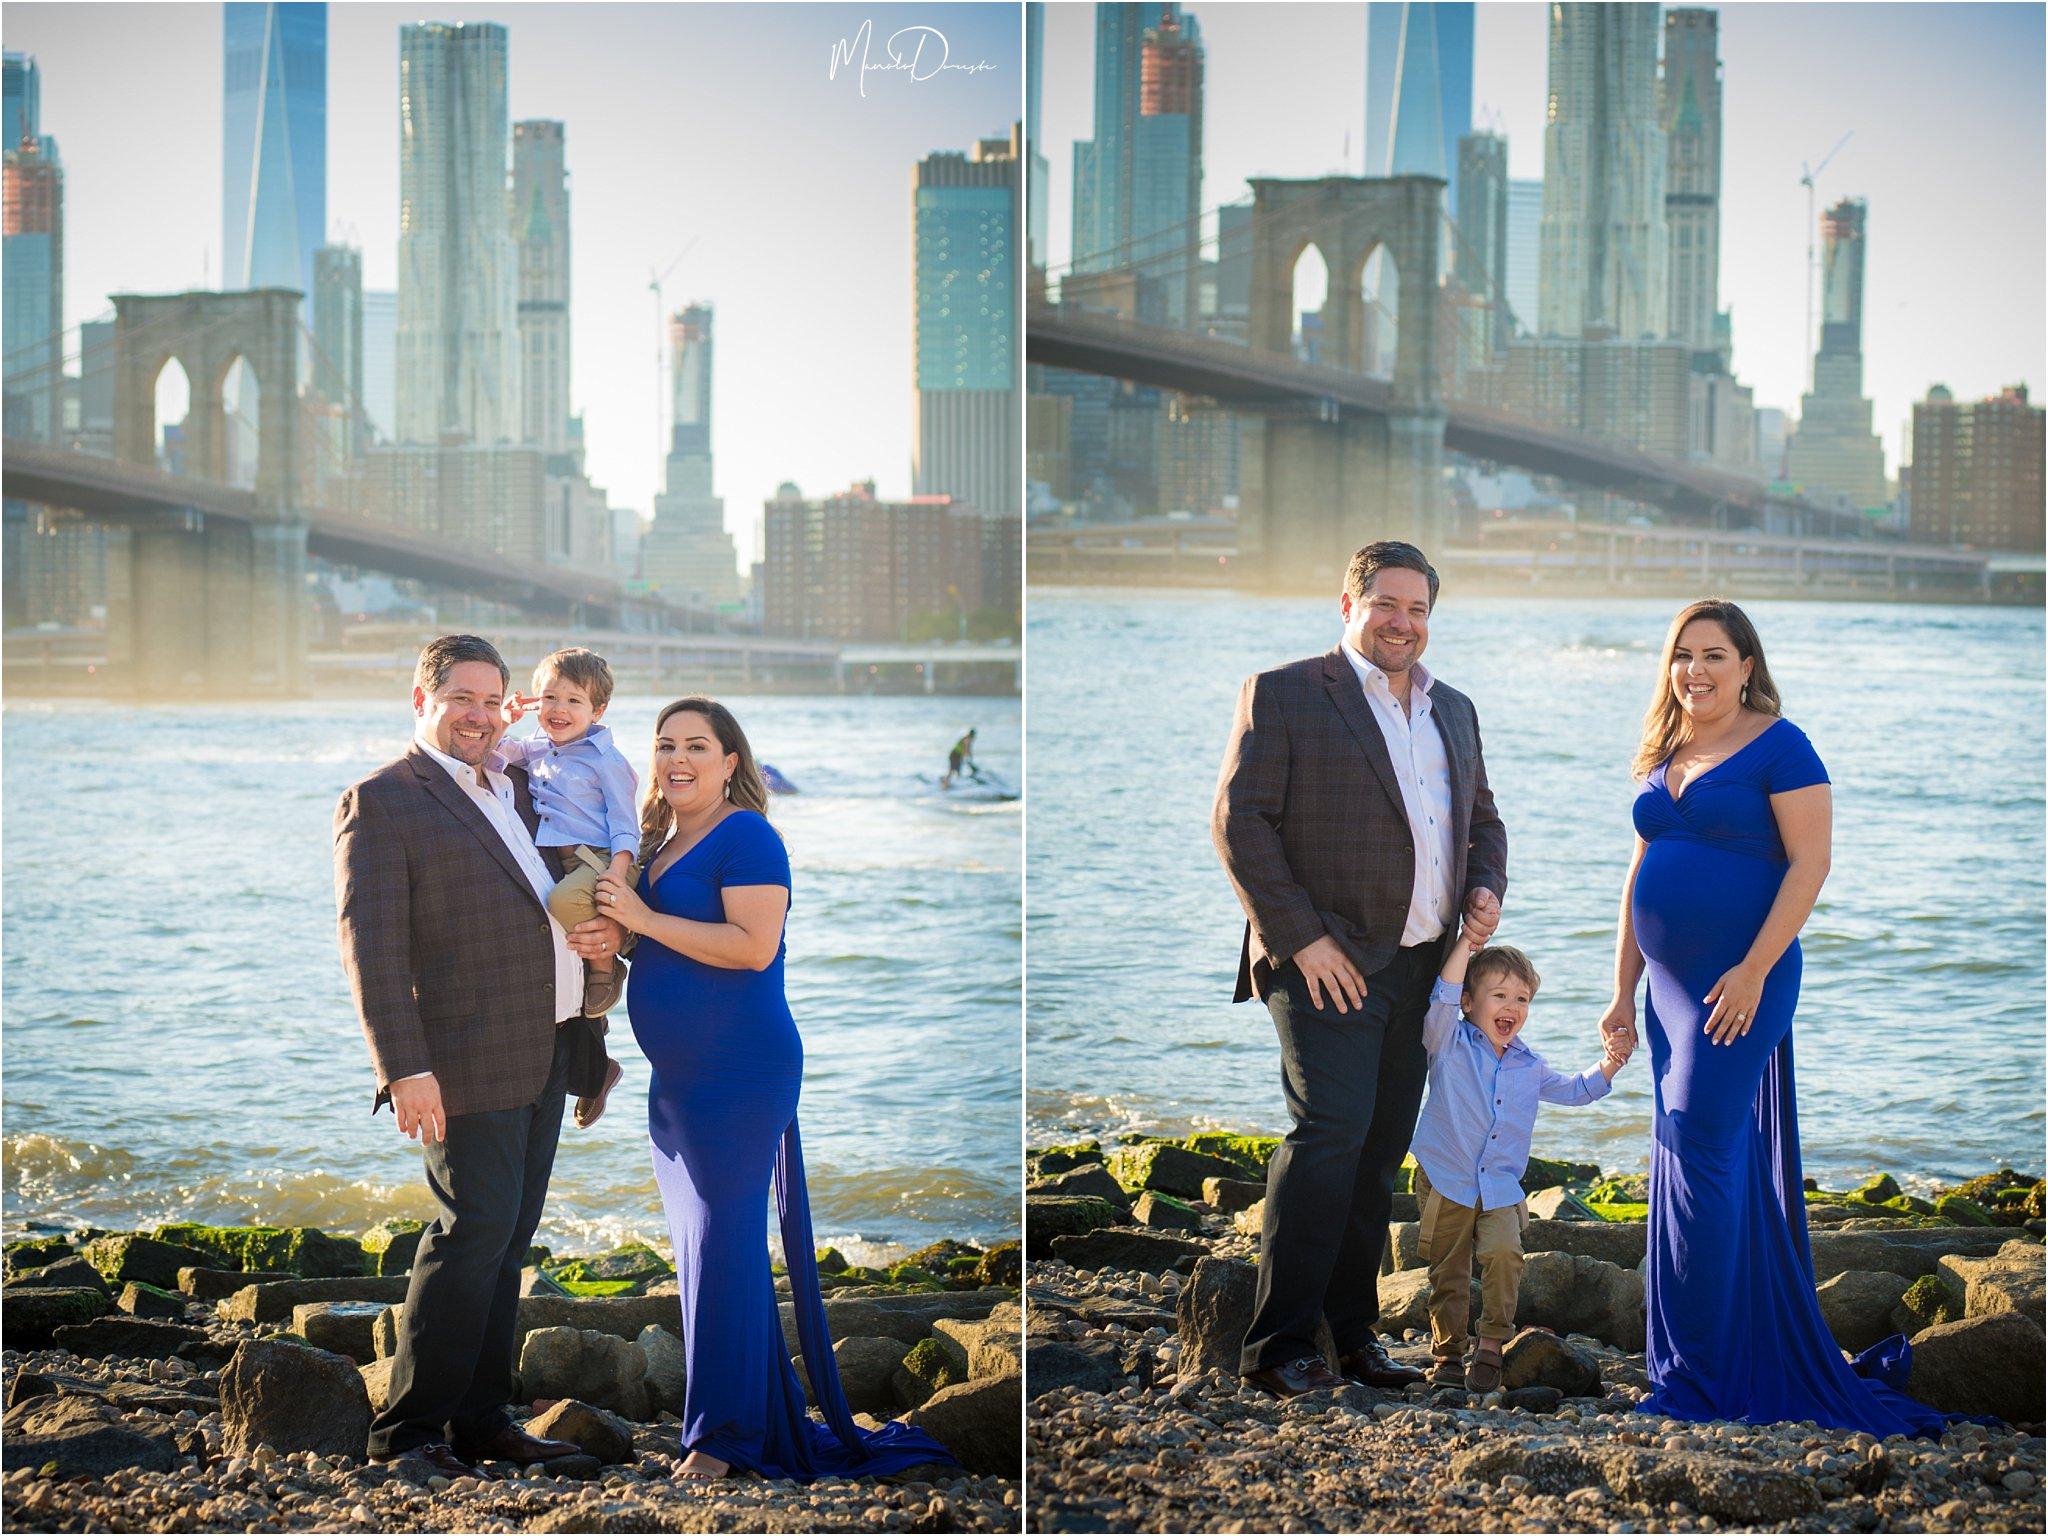 0175_ManoloDoreste_InFocusStudios_Wedding_Family_Photography_Miami_MiamiPhotographer.jpg